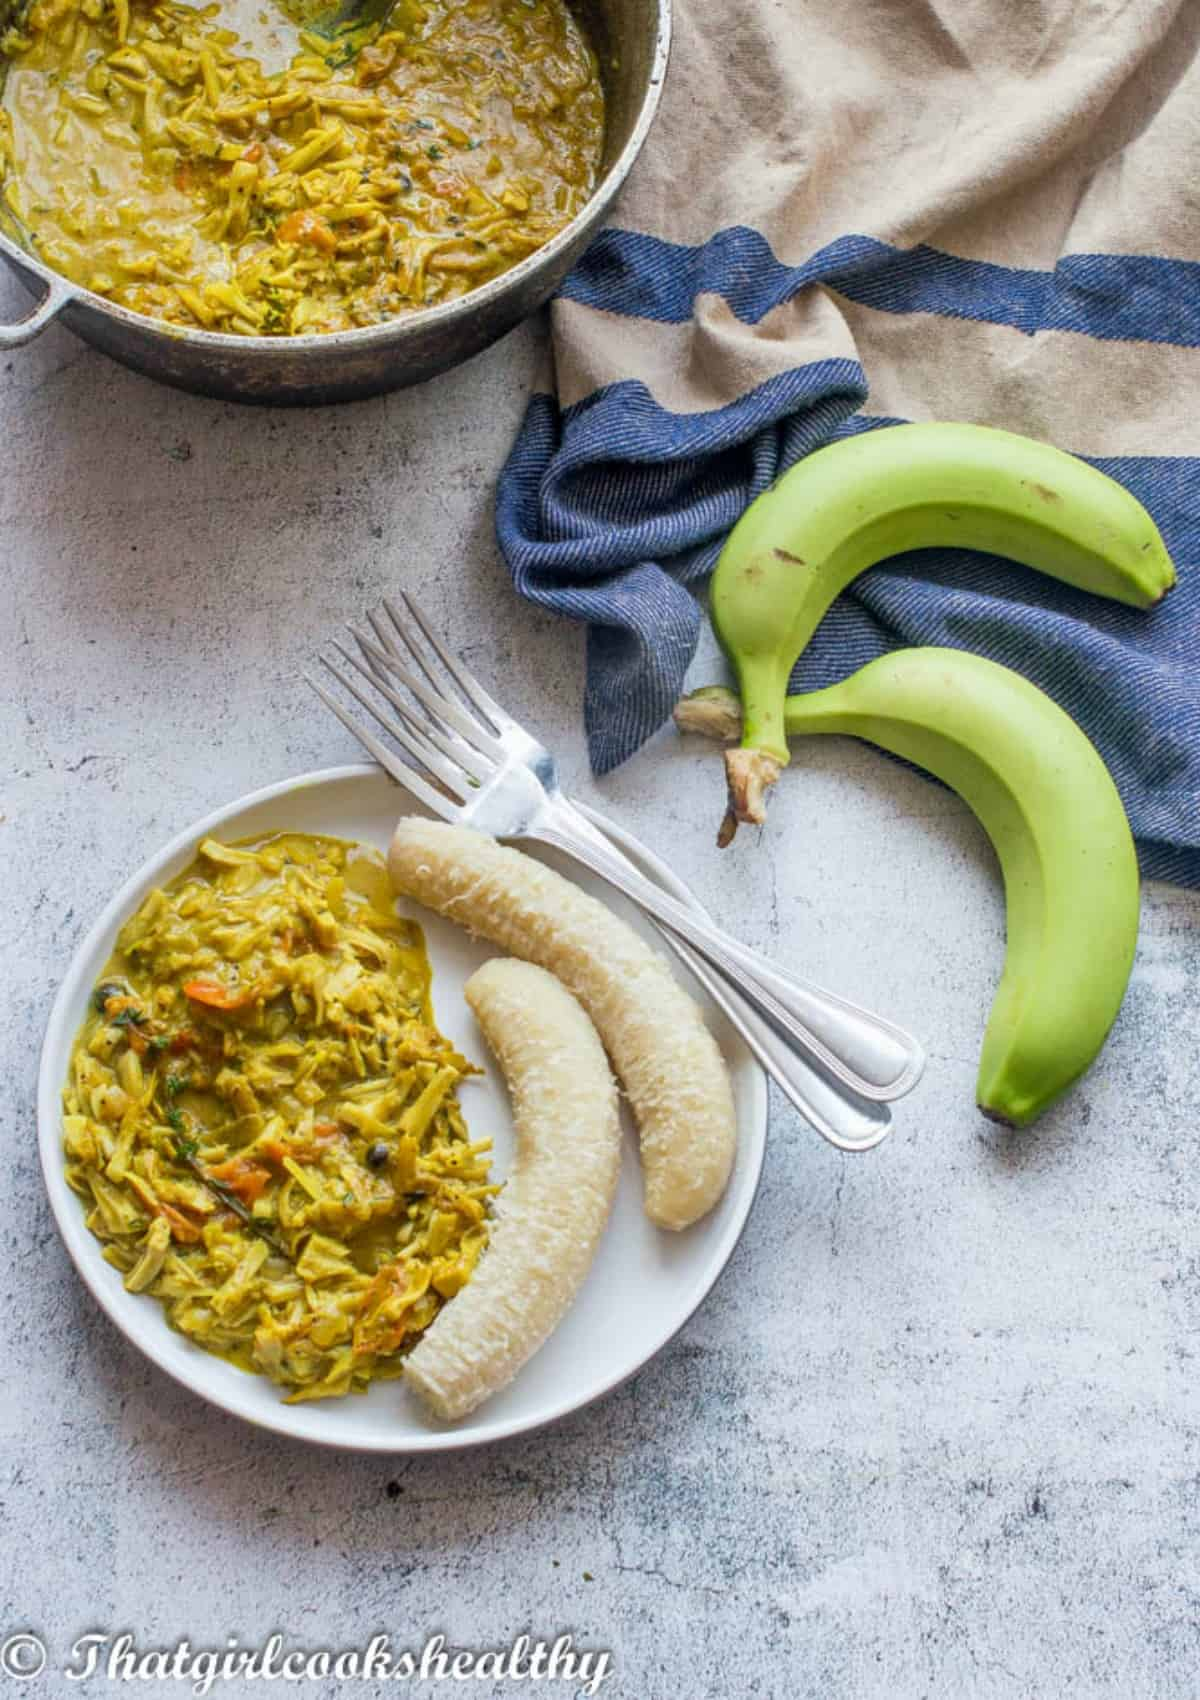 plate of food with green bananas